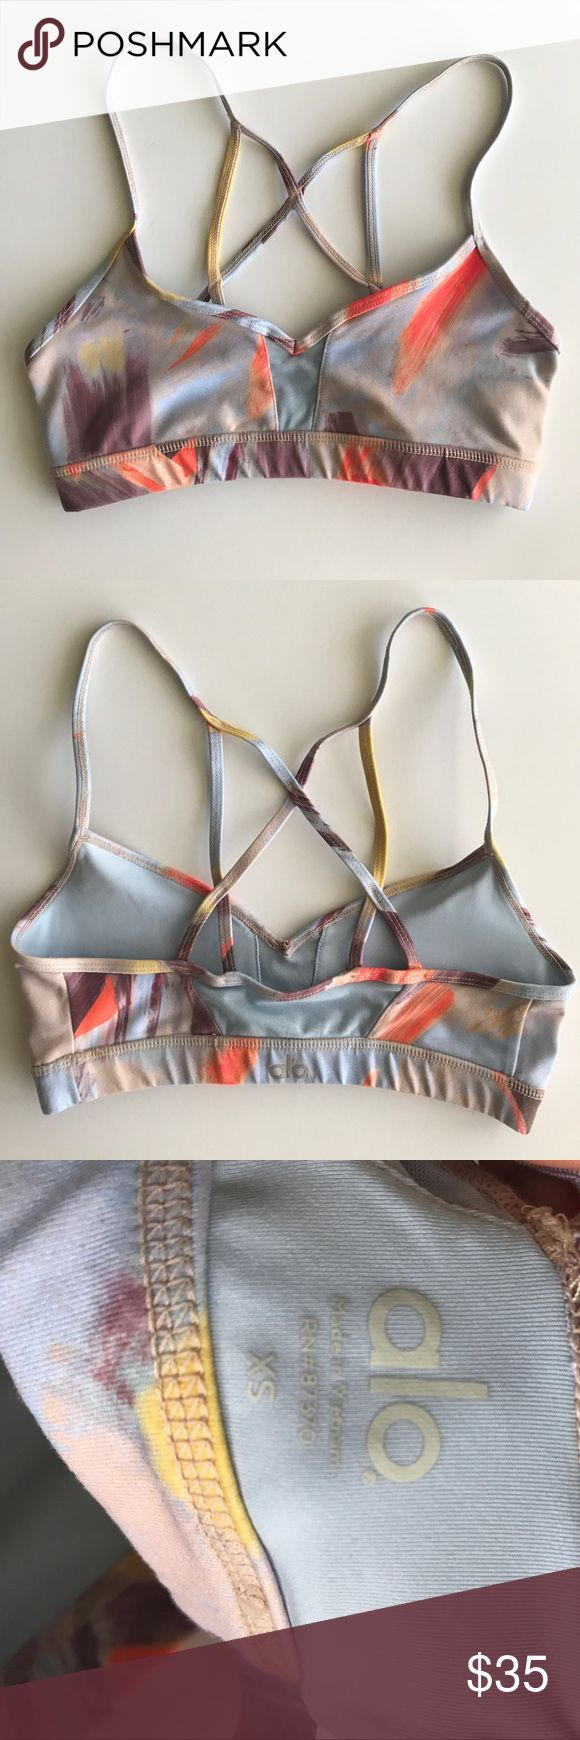 Also Yoga Goddess Bra New without tags- was hand washed and laid flat to dry once, never worn. Features mesh inset in front and back center & Strappy details in back. Super cute!  💙No Trades💙 ALO Yoga Intimates & Sleepwear Bras